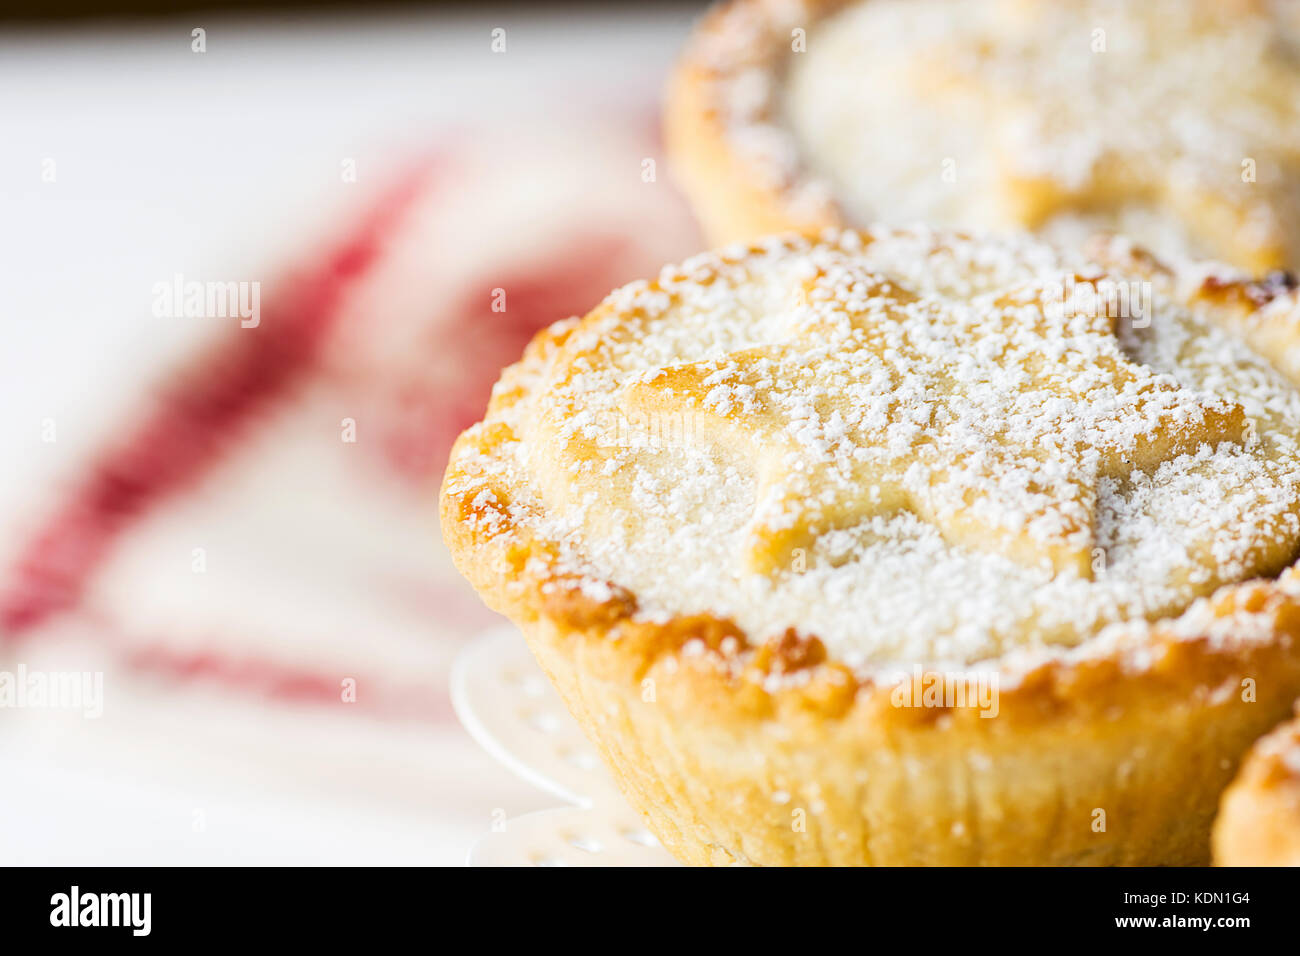 Traditional British Christmas Pastry Dessert Home Baked Mince Pies with Apple Raisins Nuts Filling on White Elegant - Stock Image